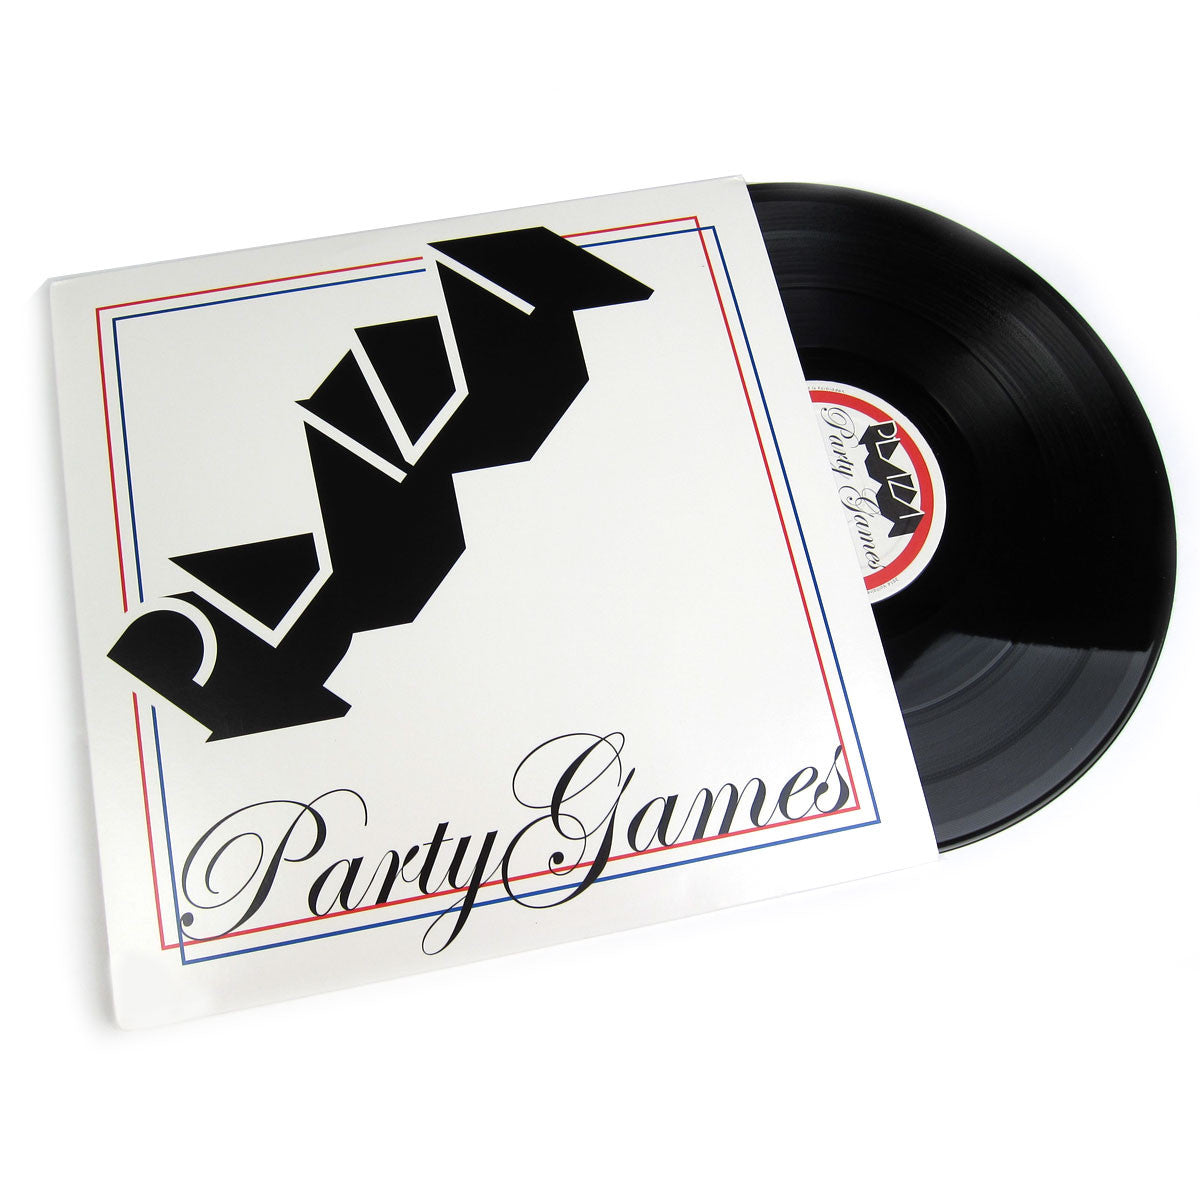 Plaza: Party Games EP (Moon B) Vinyl 12""